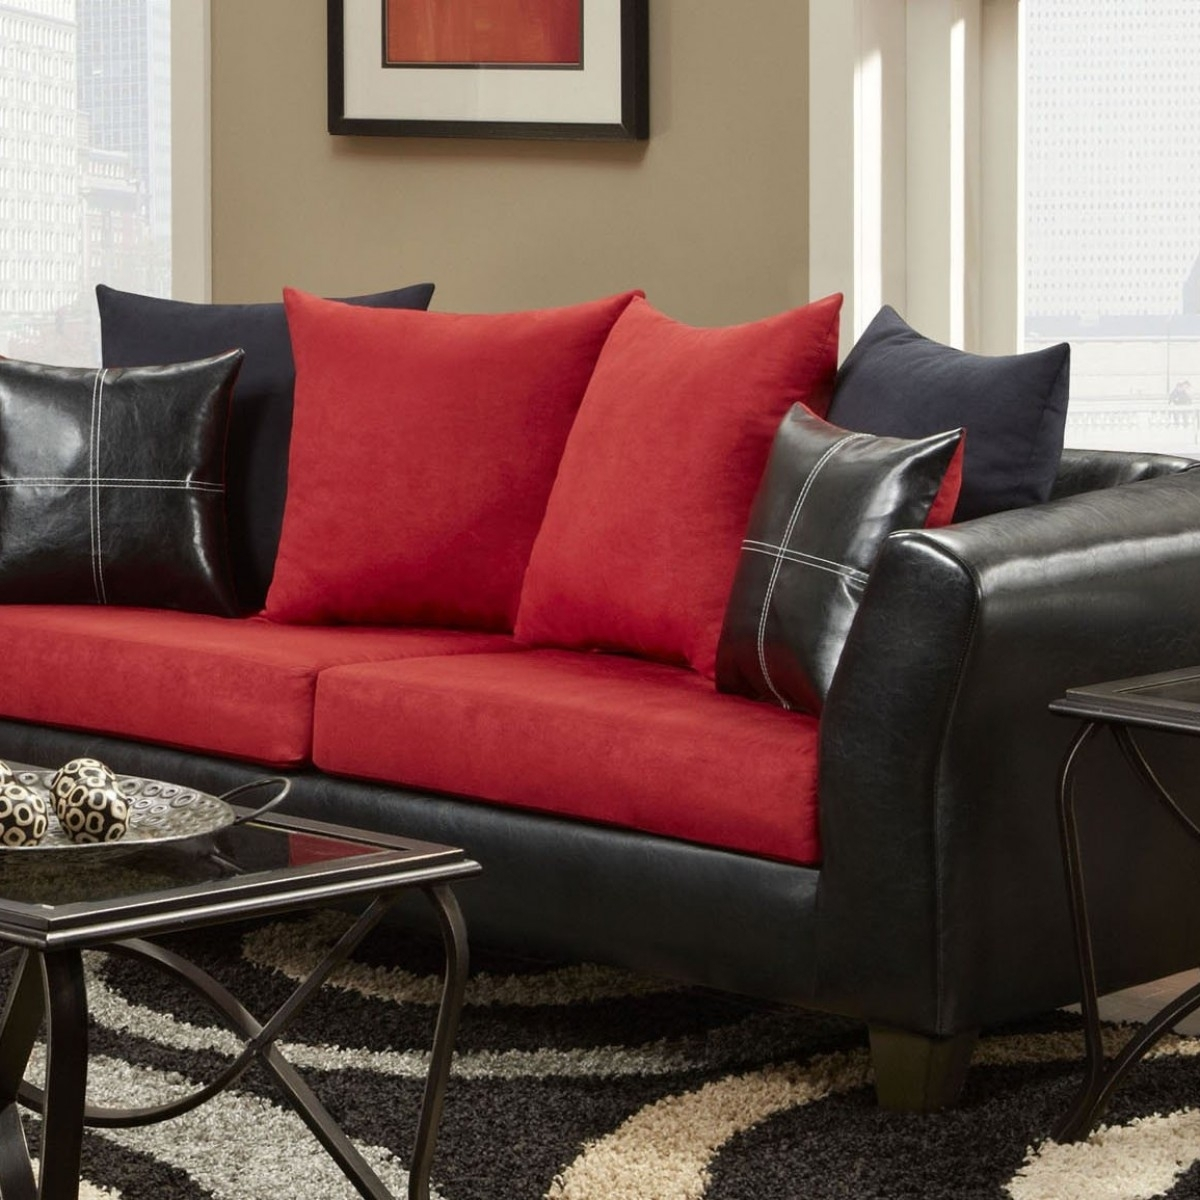 Cheap Sofas Under 200 | Cheap Sectional Sofas Under 200 | Home throughout Sectional Sofas Under 200 (Image 4 of 10)